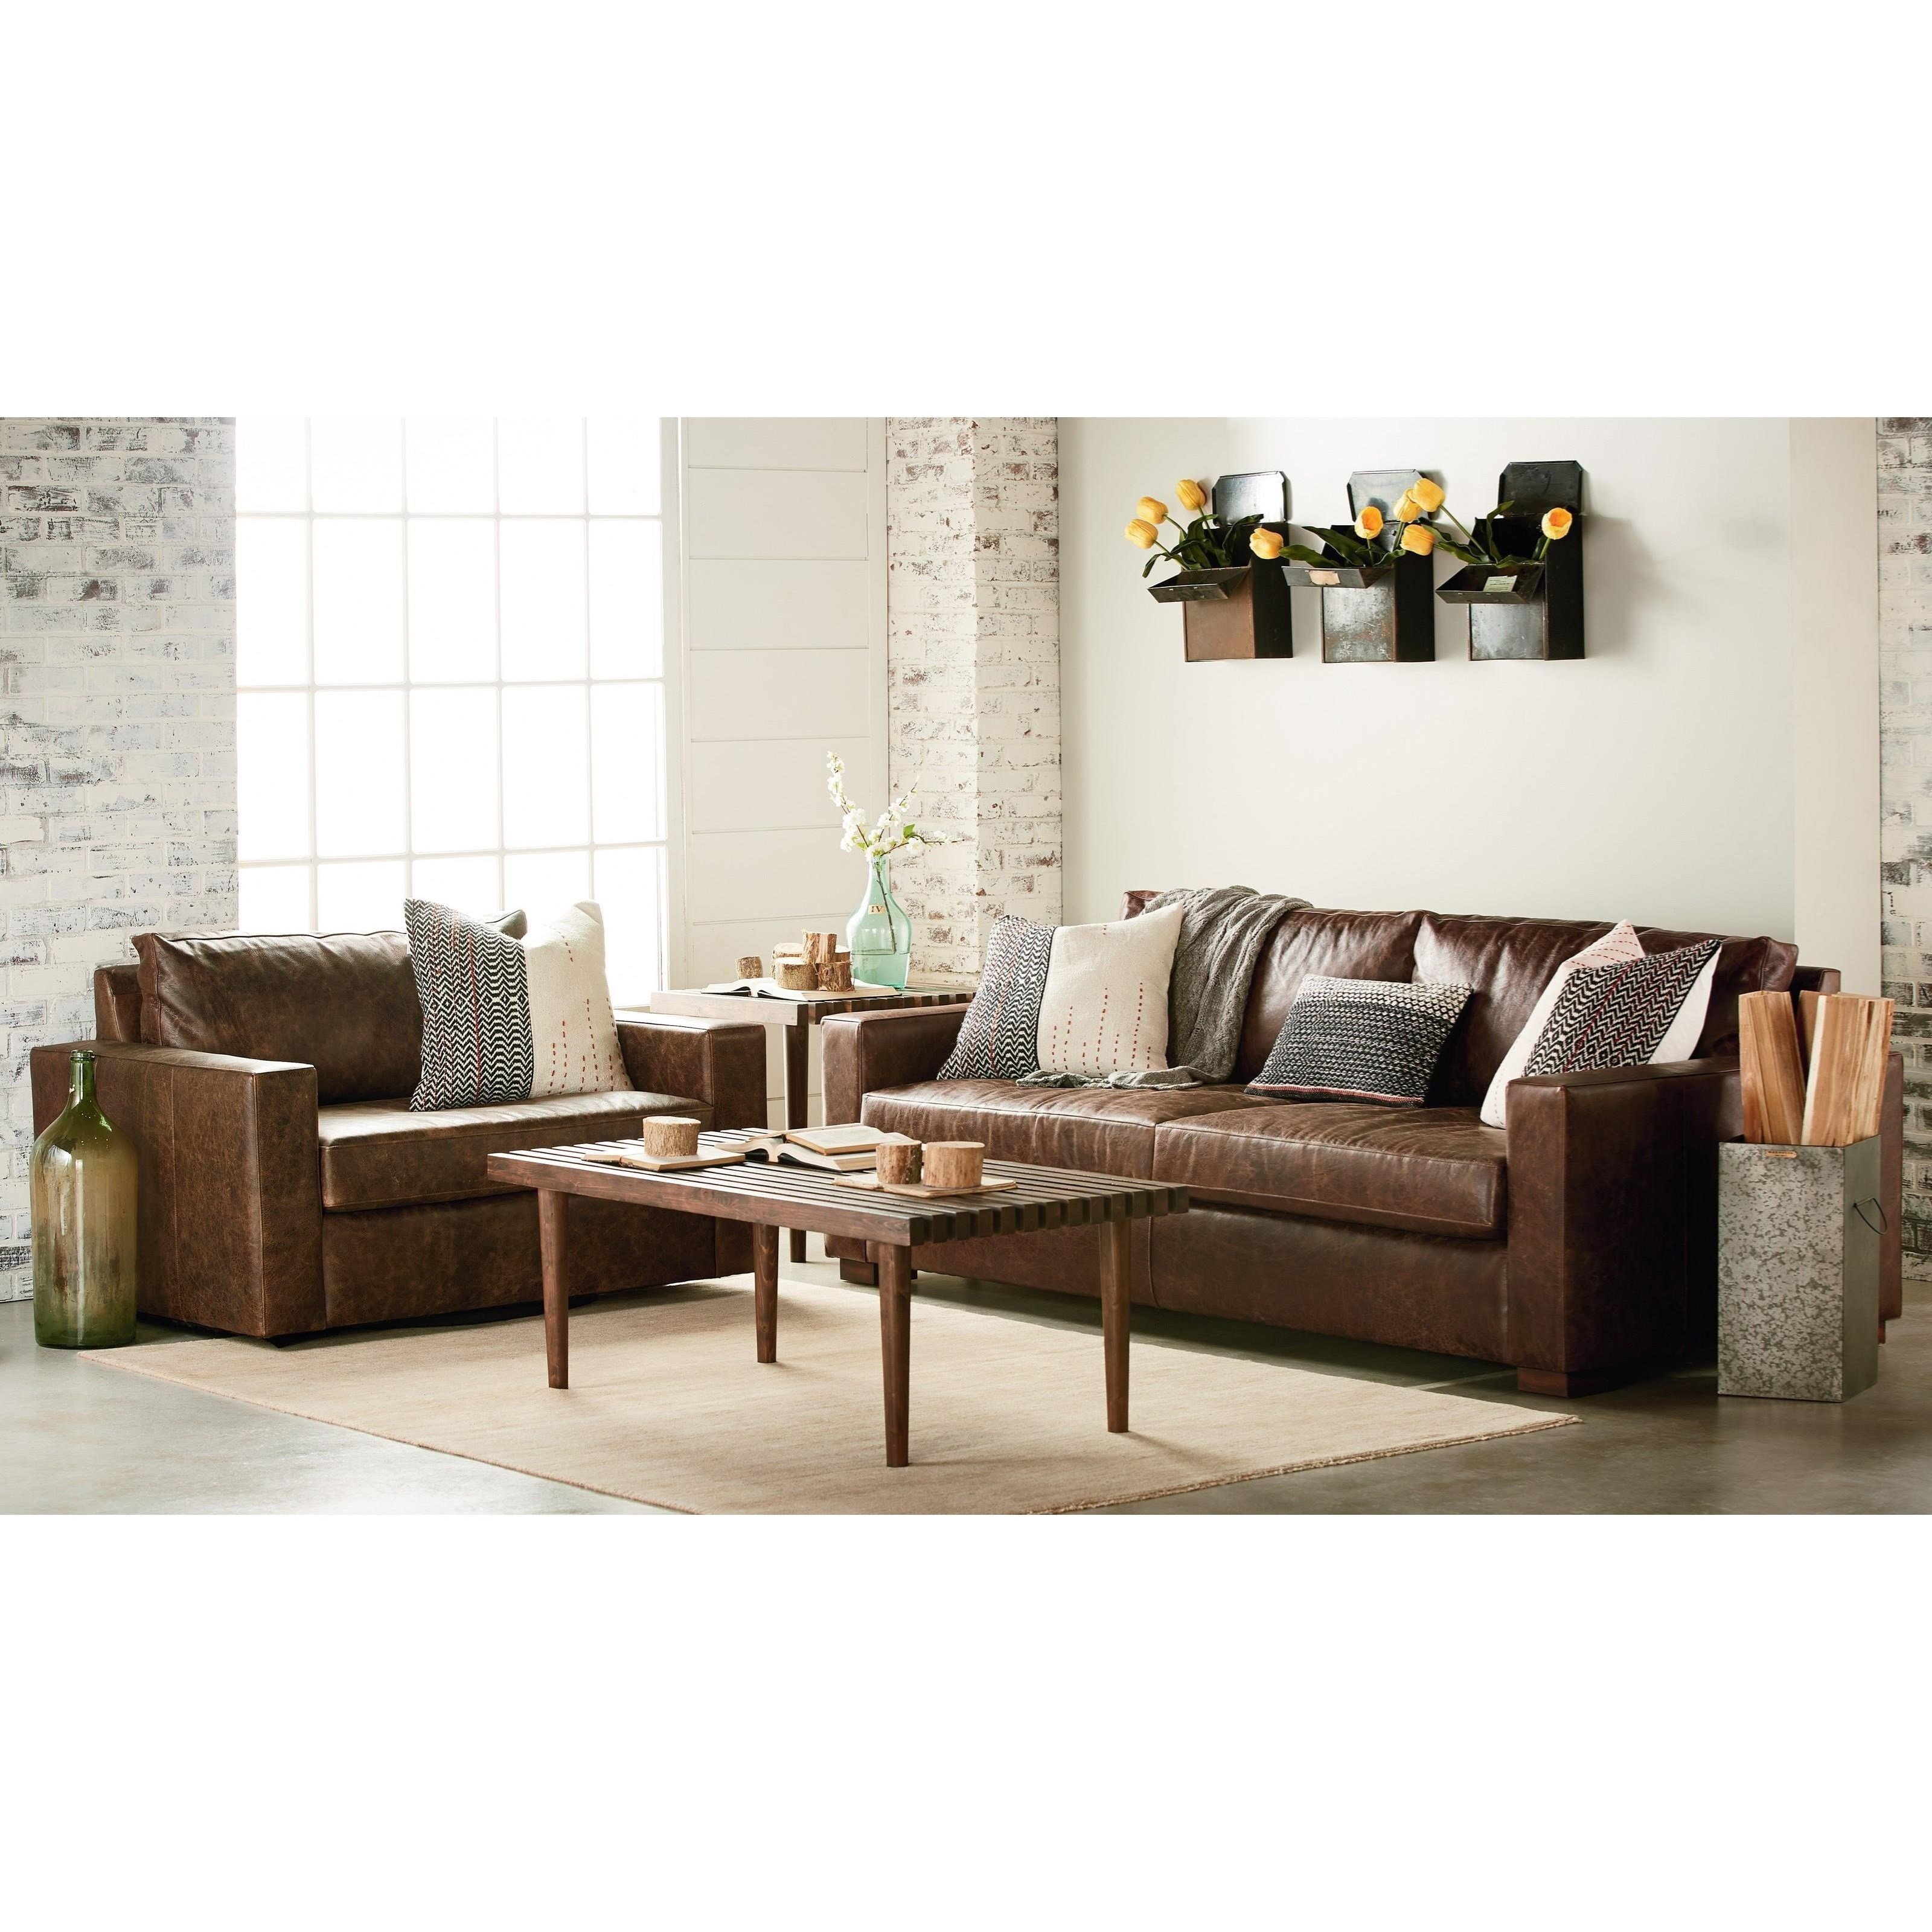 Magnolia home by joanna gaines southern sown leather sofa for F living room furniture